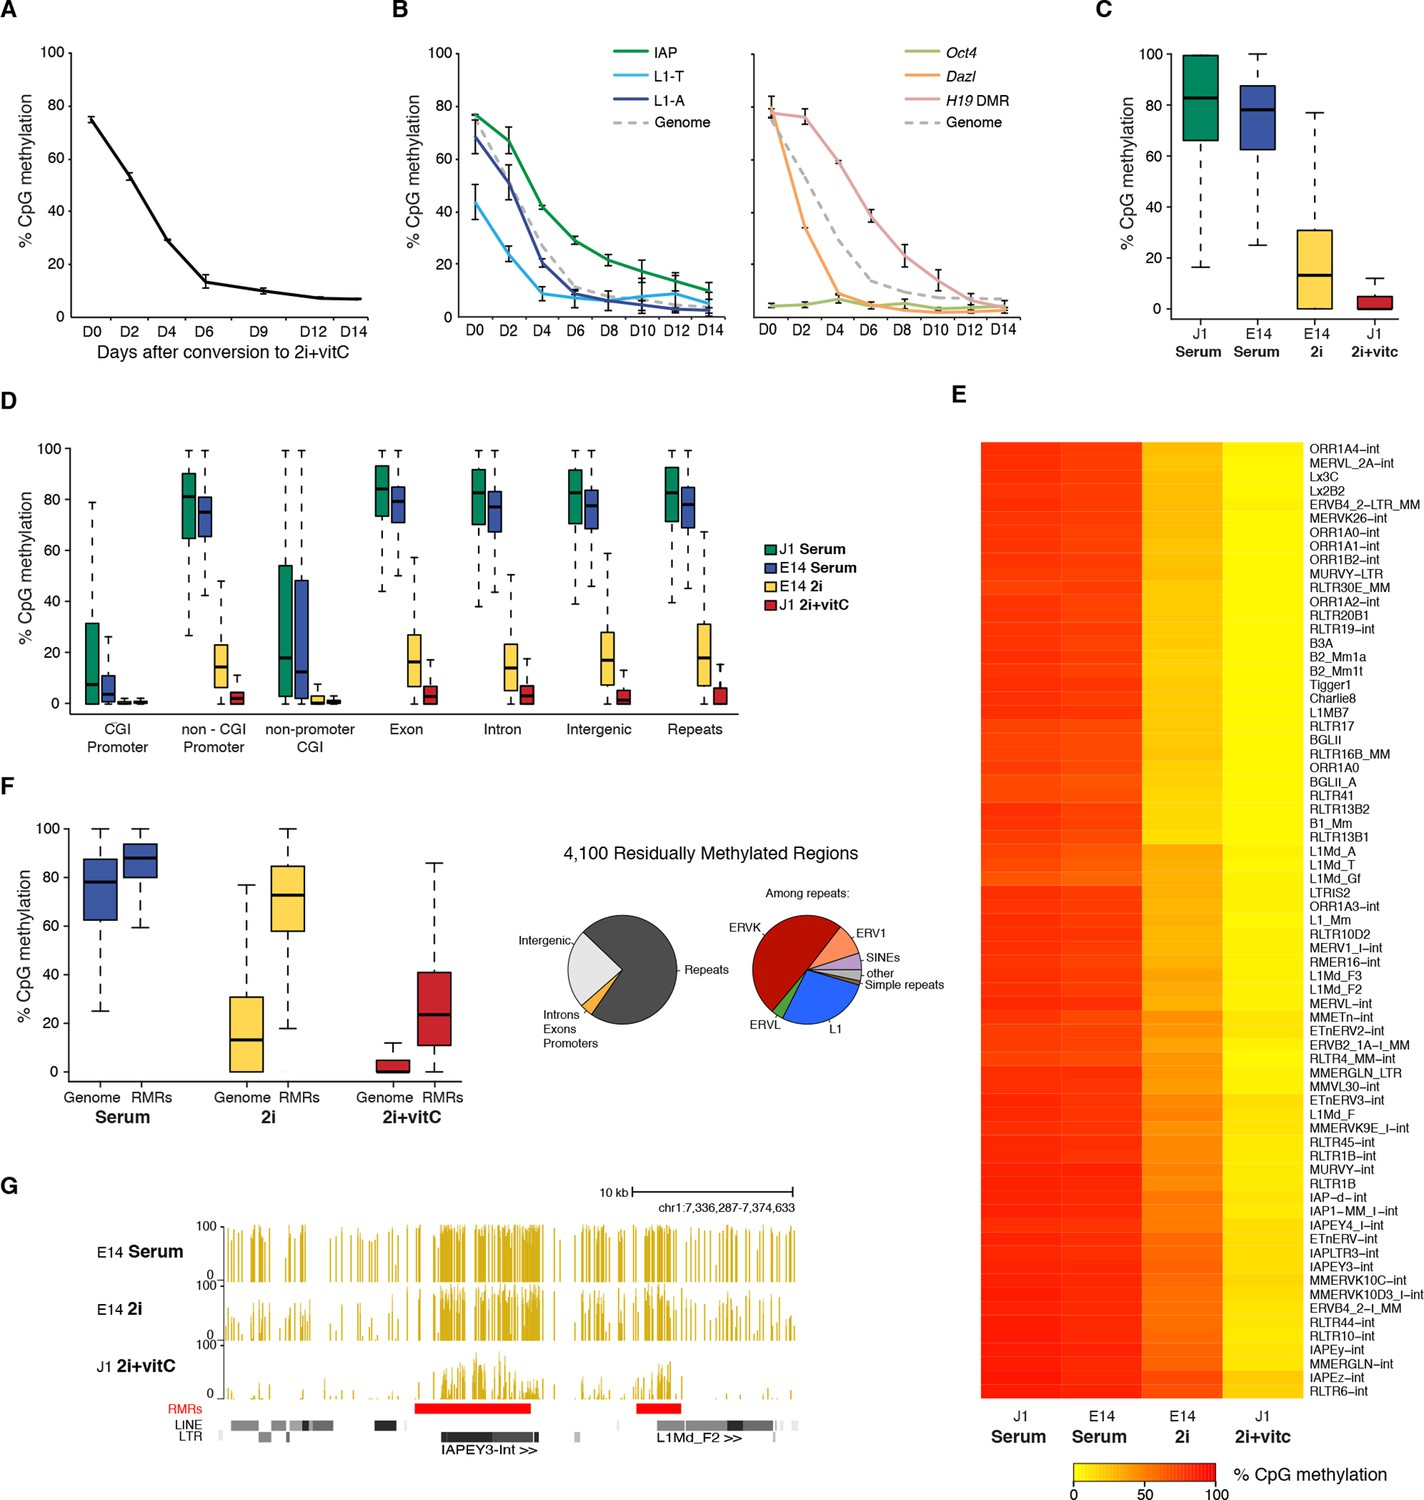 An Epigenetic Switch Ensures Transposon Repression Upon Dynamic Loss Converter Circuit Ca3110 Adconverter Addaconverter Kinetics And Extent Of Dna Methylation In Es Cells Serum To 2i Vitc Conversion